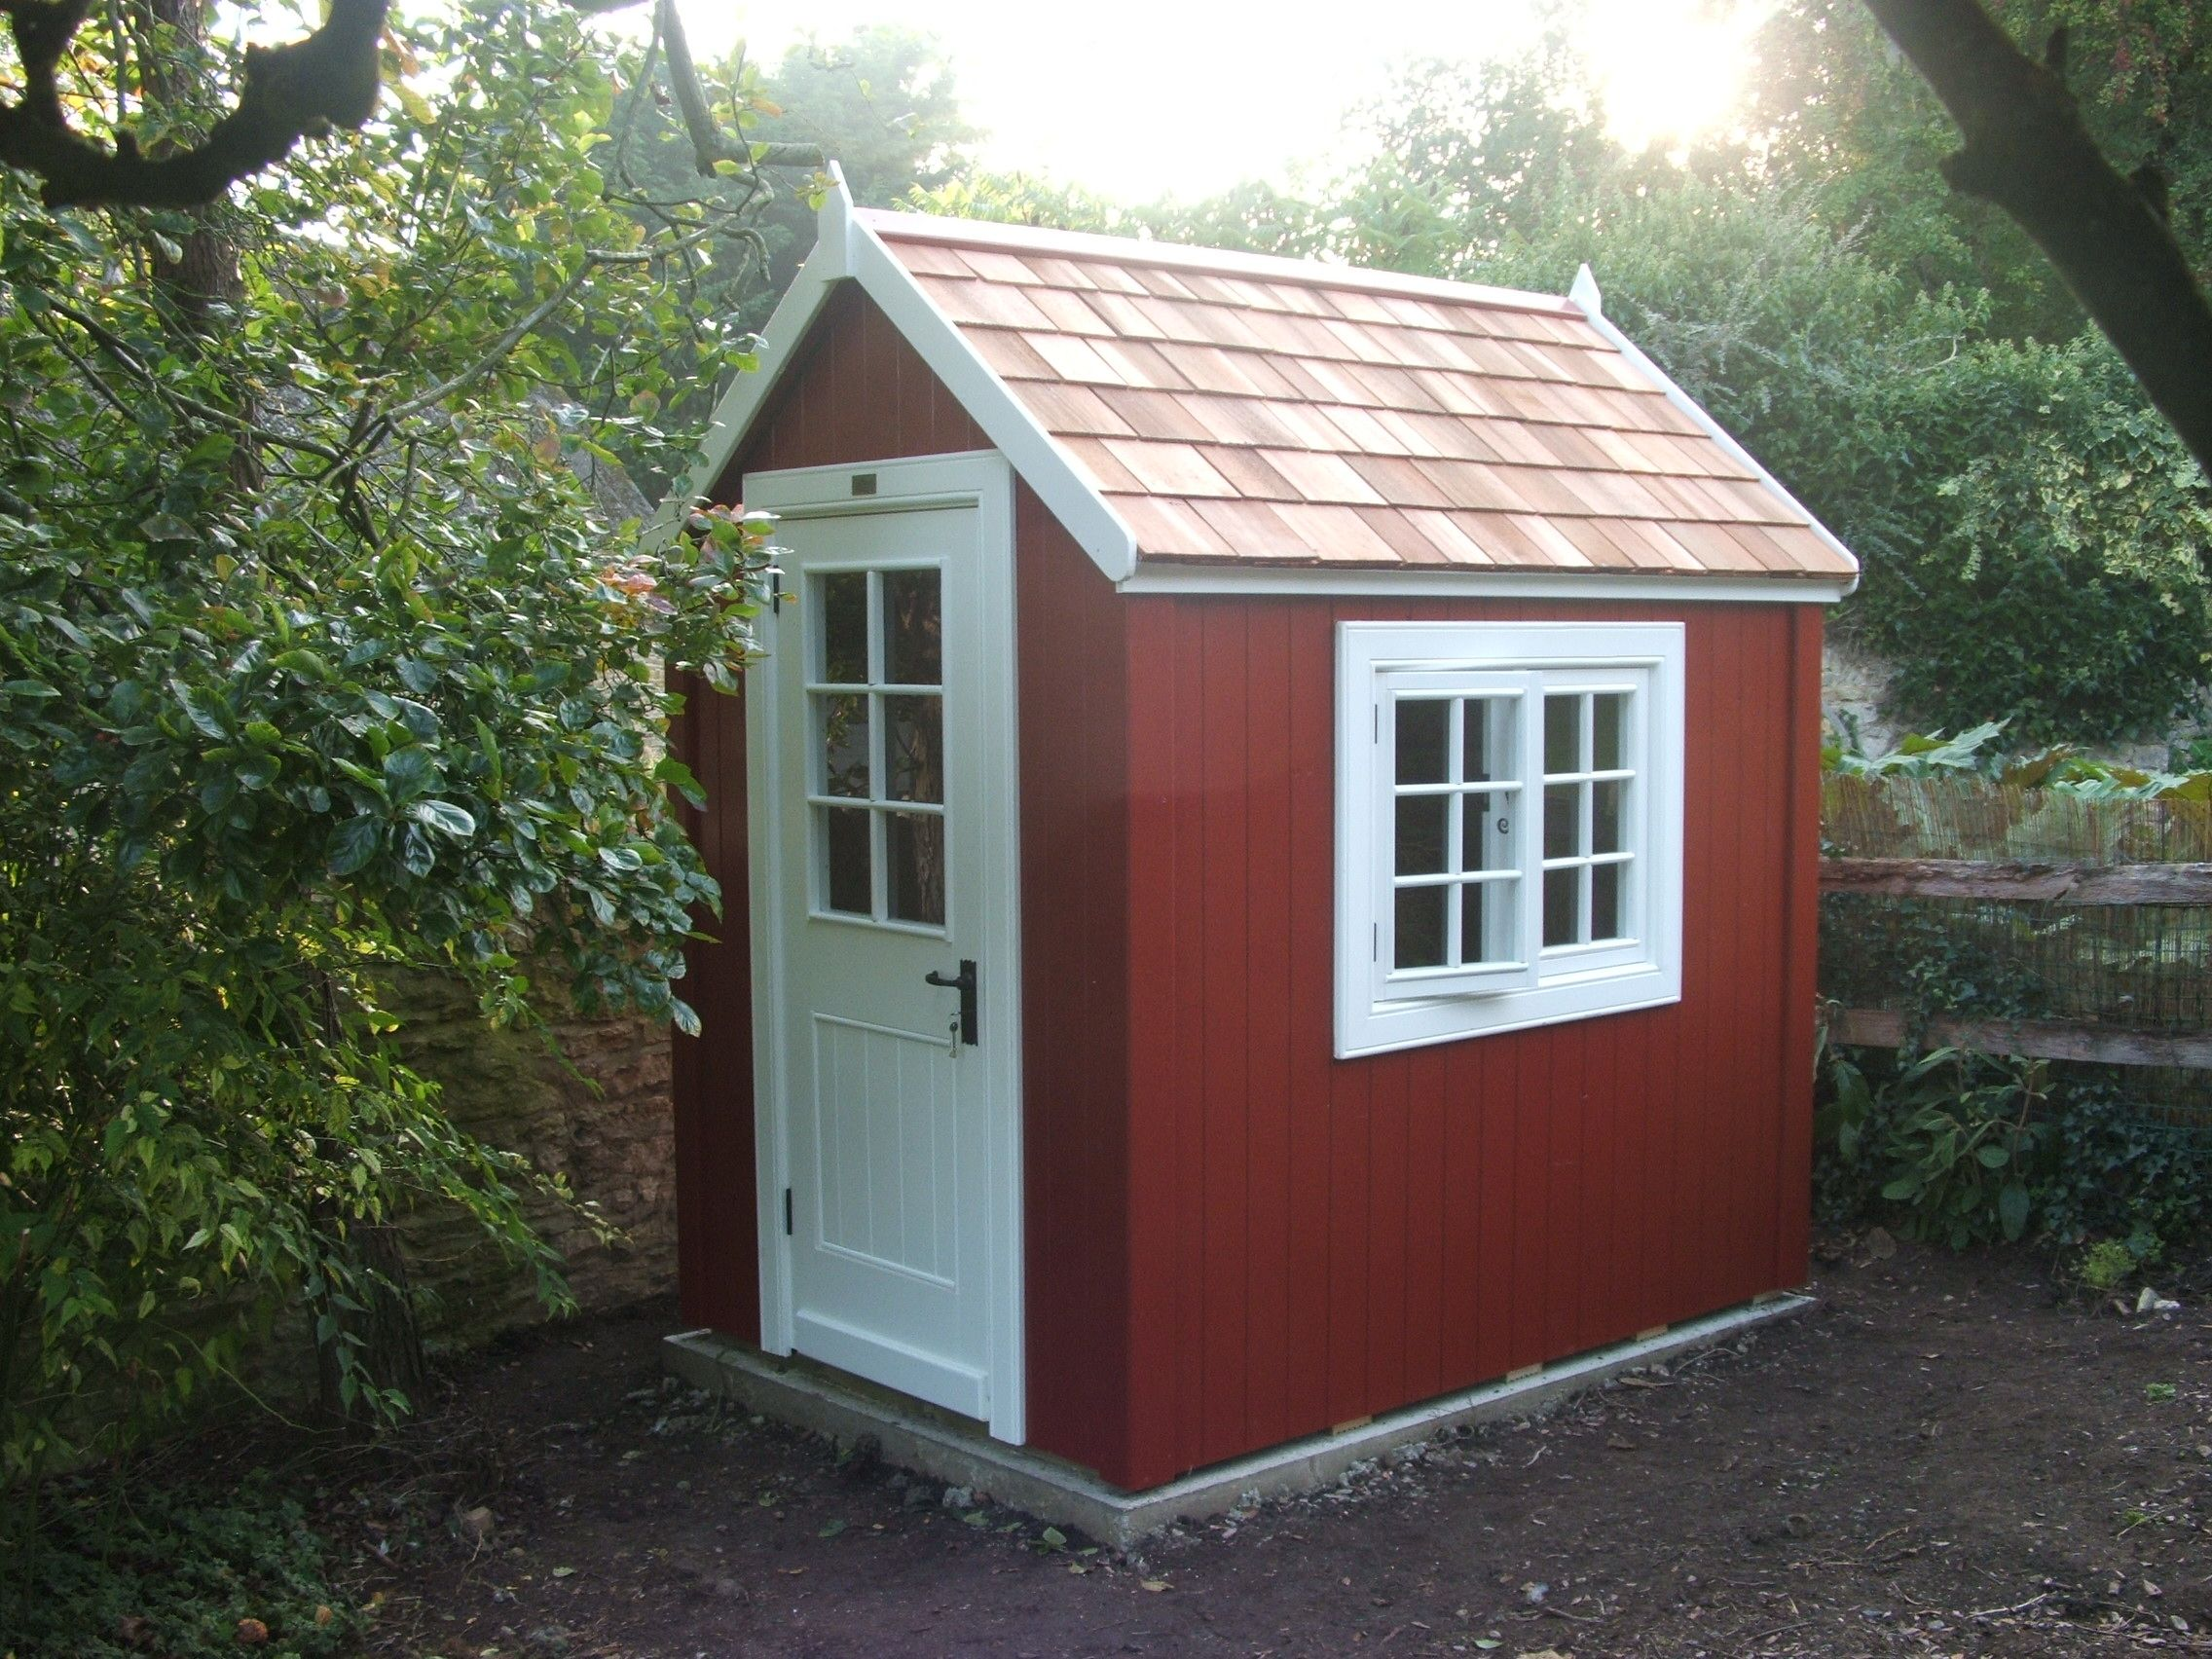 Beau 7ft X 5ft Potting Shed In Swedish Red And White With Cedar Roof